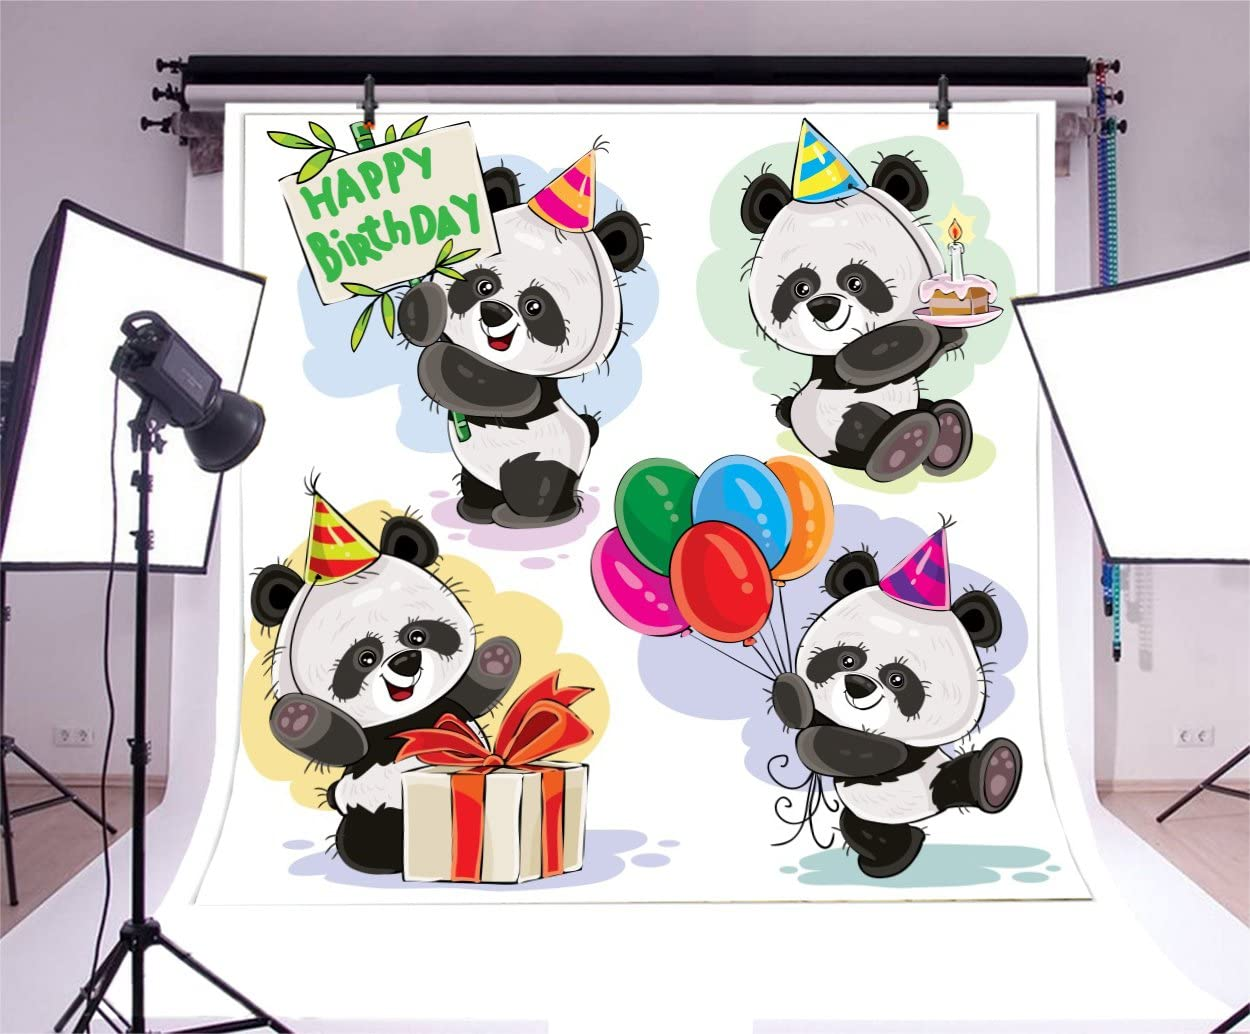 Yeele 10x8ft Happy Birthday Photography Background Cartoon Panda Bamboo Colorful Dot Birthday Party Decoration Baby Photo Backdrop Studio Props Video Drape